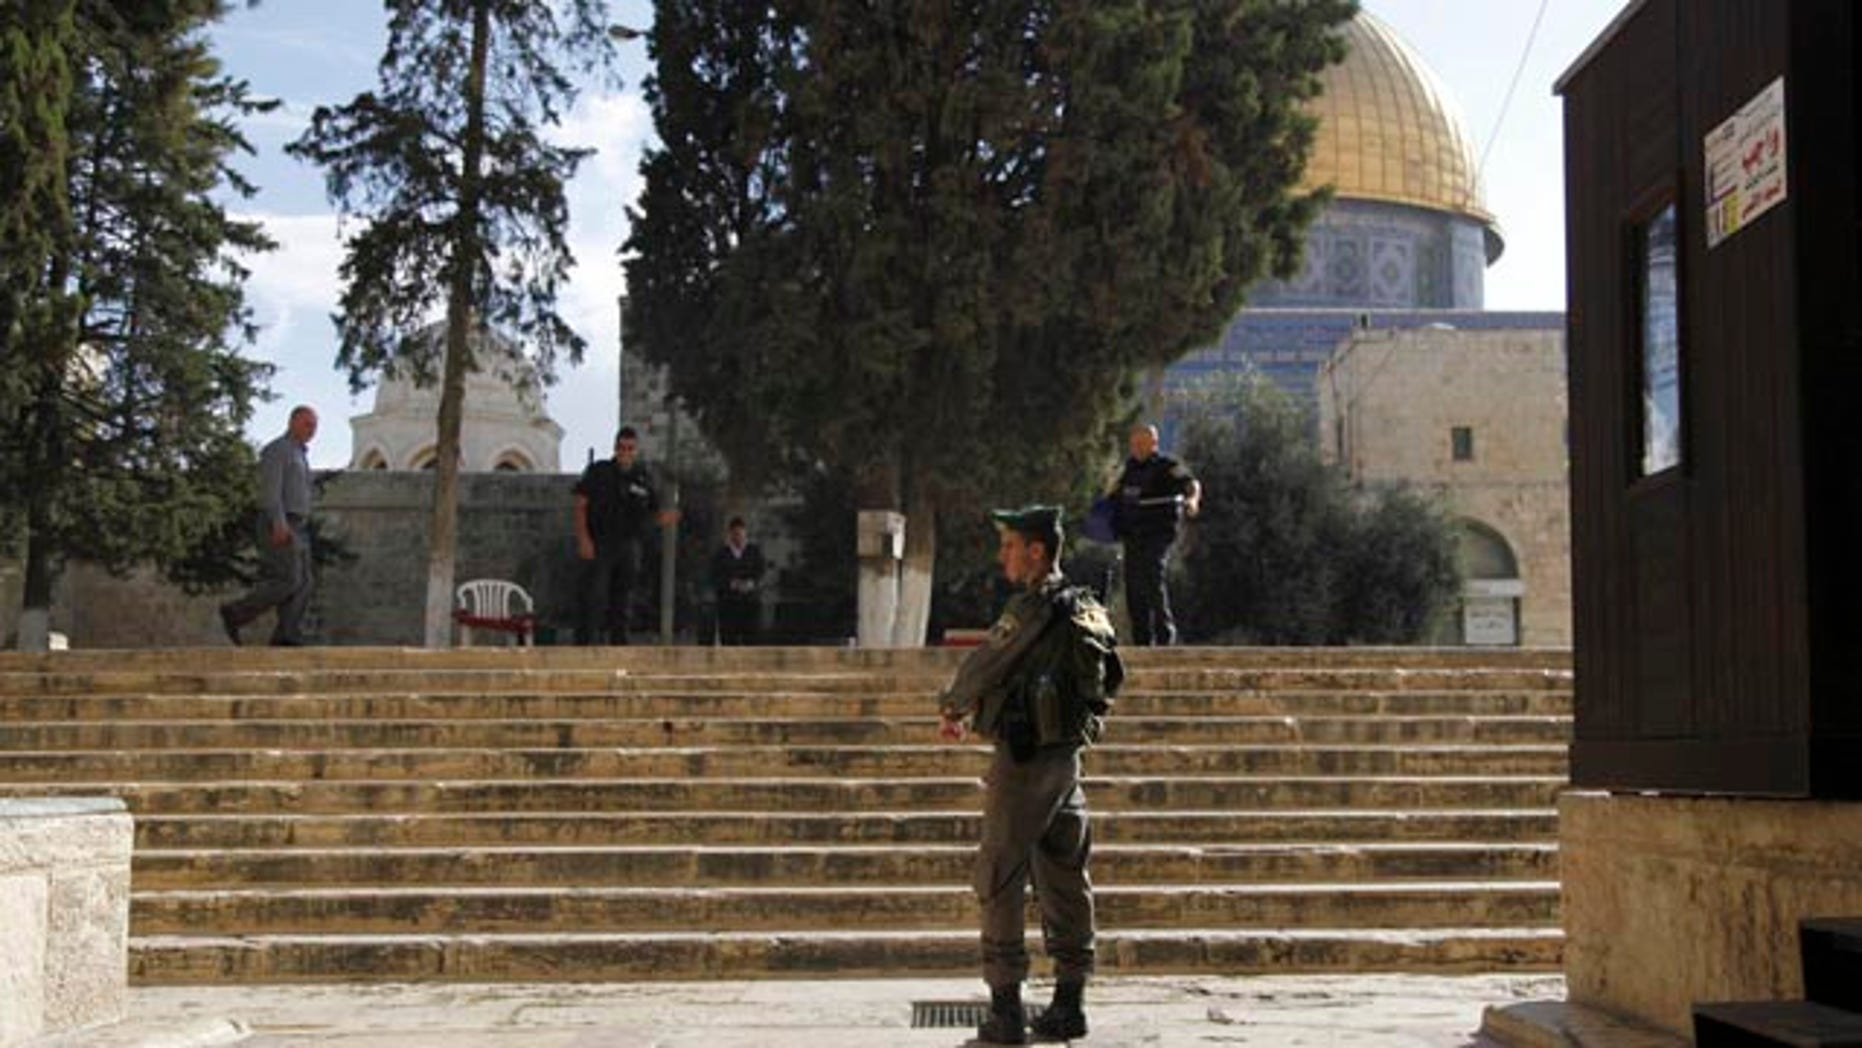 Oct. 8, 2015: Israeli police stand guard at the entrance to the Al-Aqsa compound in Jerusalem's Old City. (AP Photo/Mahmoud Illean)